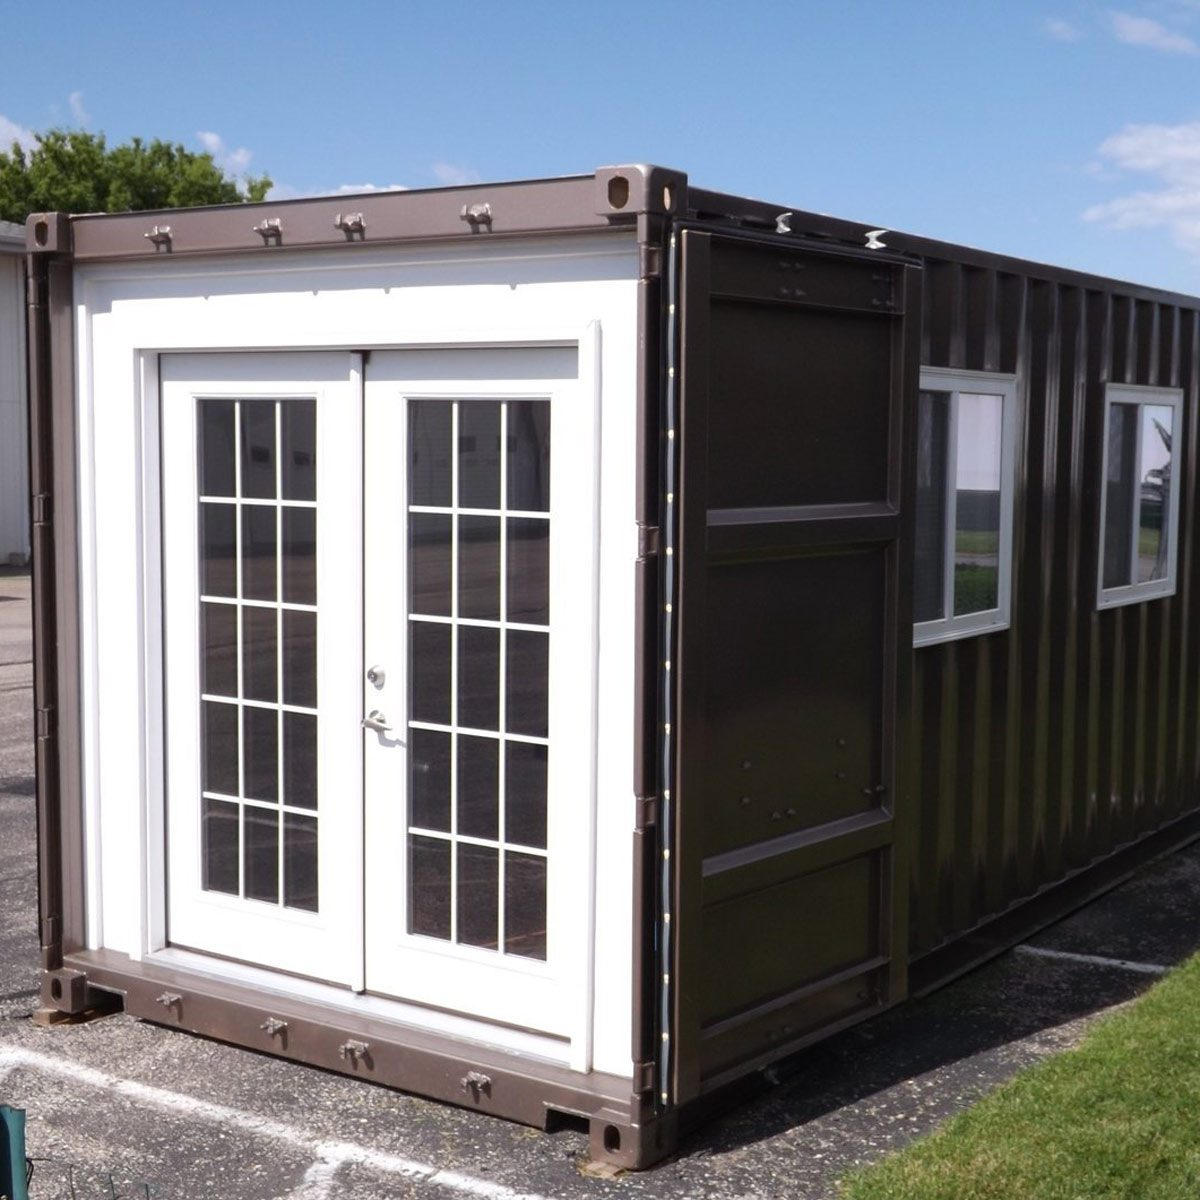 MODS International Tiny Home